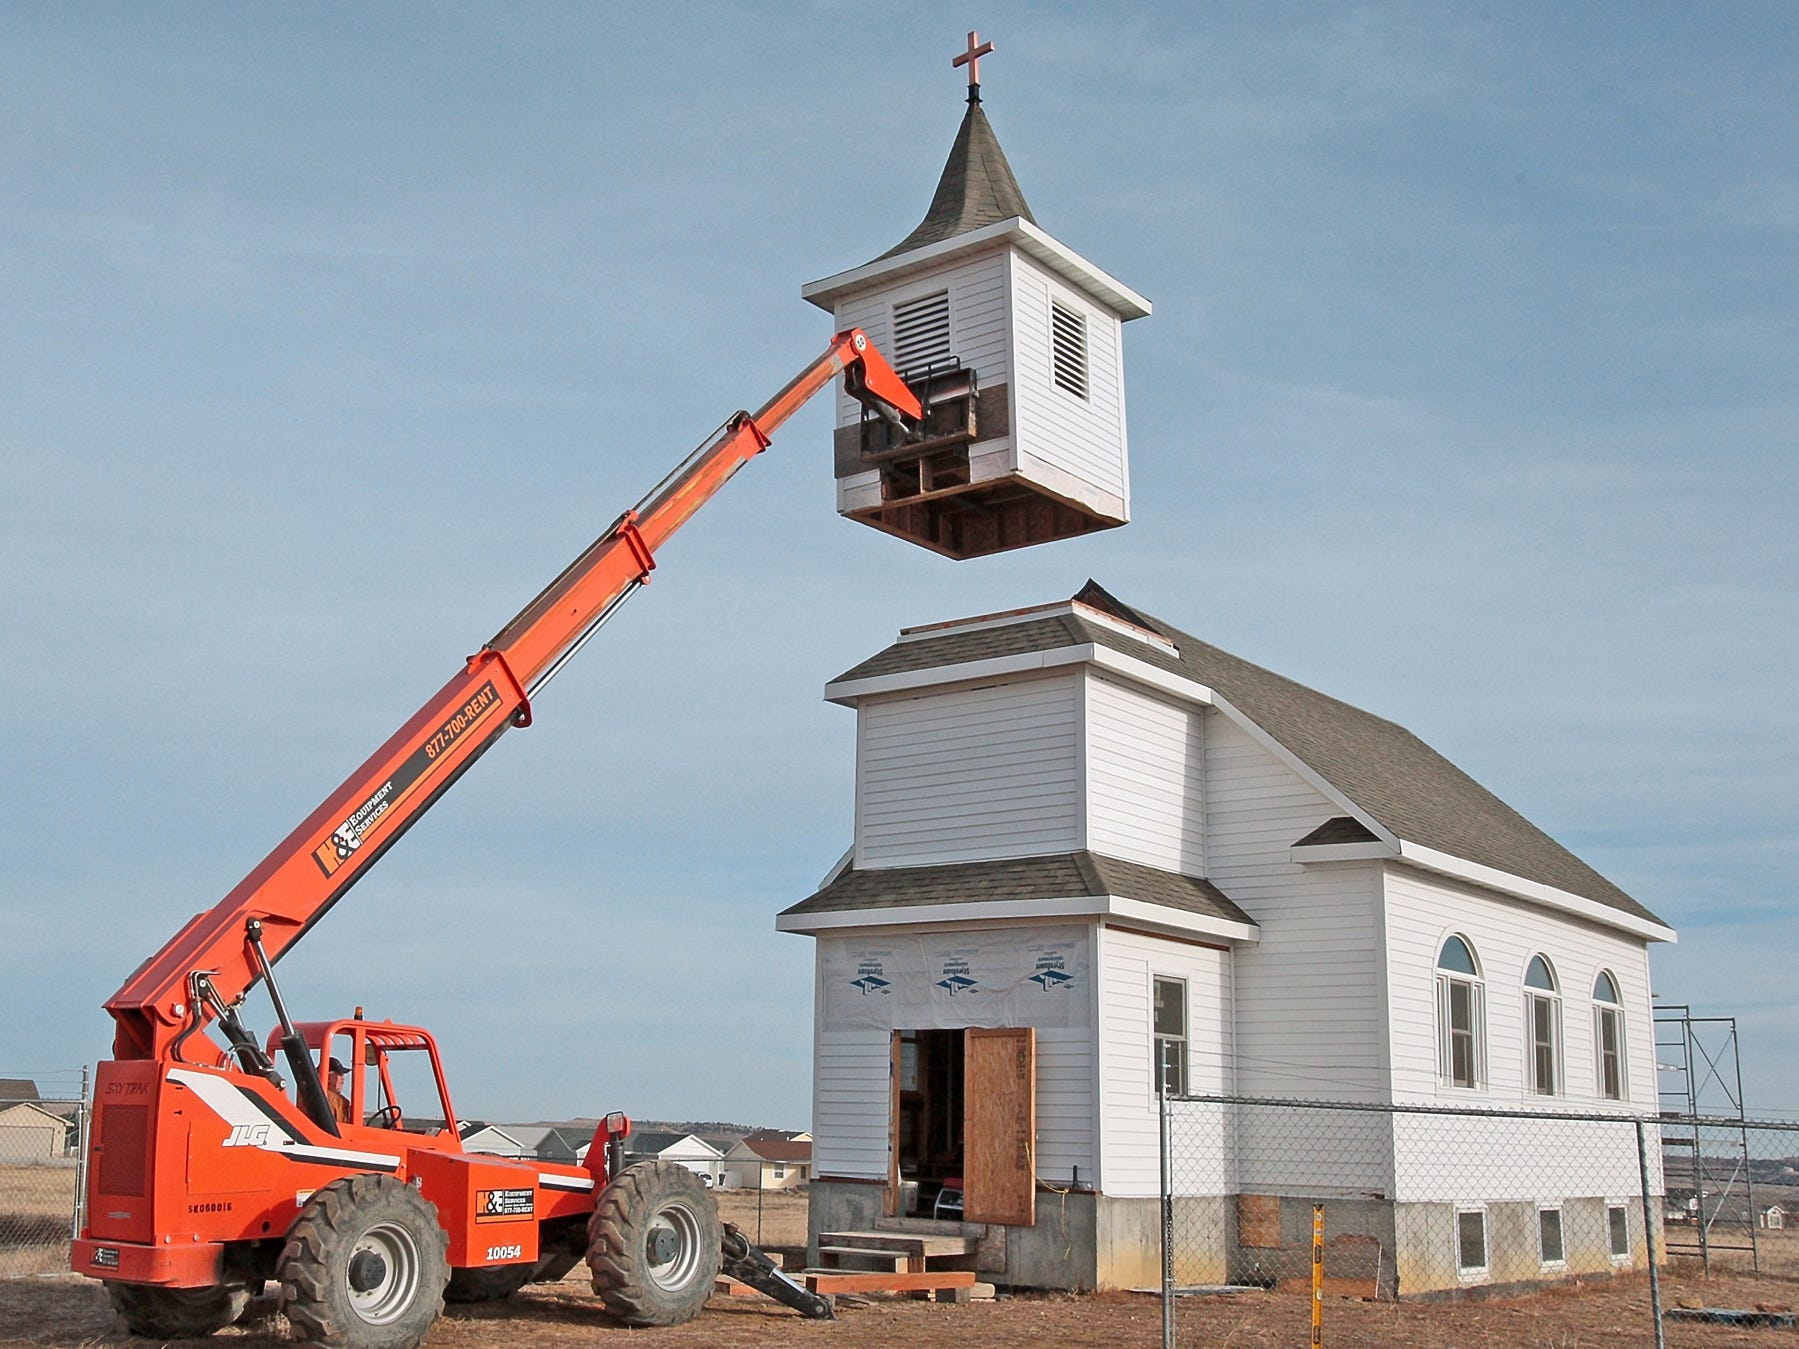 In this Nov. 20, 2009 photo, Jack Beals uses a forklift to lift the steeple, of the Little White Church on the hill, back into place in Billings, Mont. The church located near Skyview was moved to Billings from Box Elder in 2006 and will be part of a St. John's Lutheran Ministries development in Billings Heights. The steeple was removed for the move and needed extensive repairs.